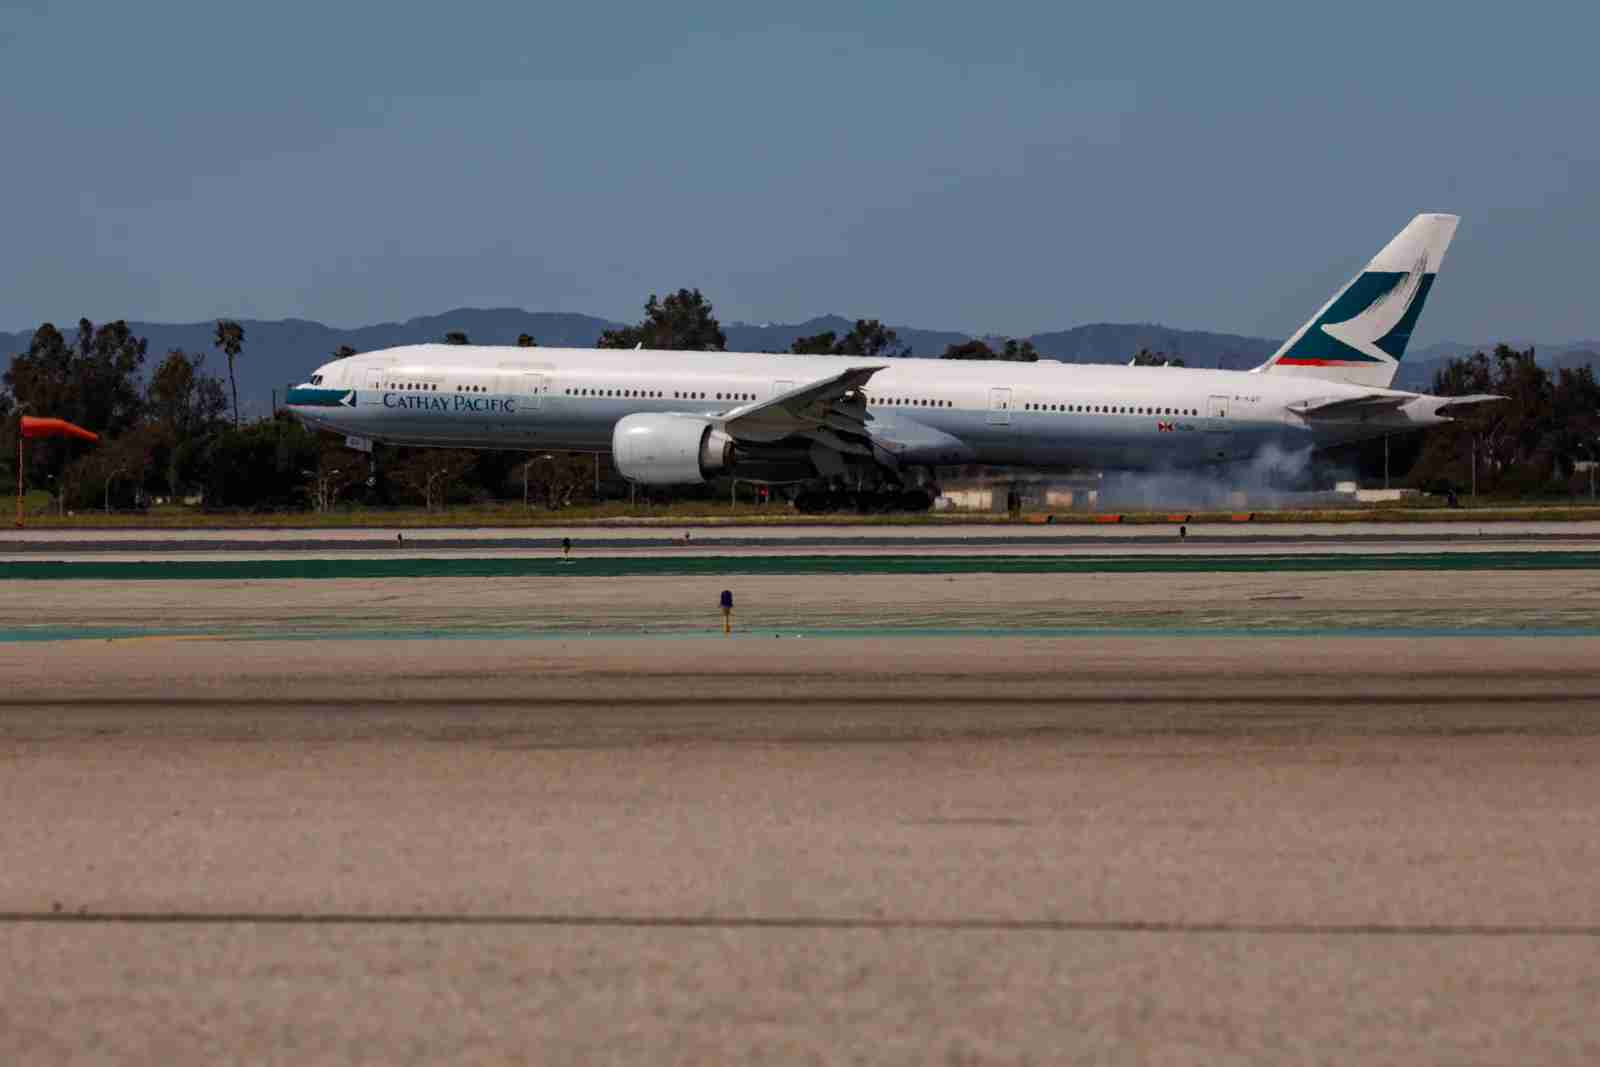 A Cathay Pacific Boeing 777-300ER lands at Los Angeles International Airport (LAX) on March 29, 2019. (Patrick T. Fallon for The Points Guy)